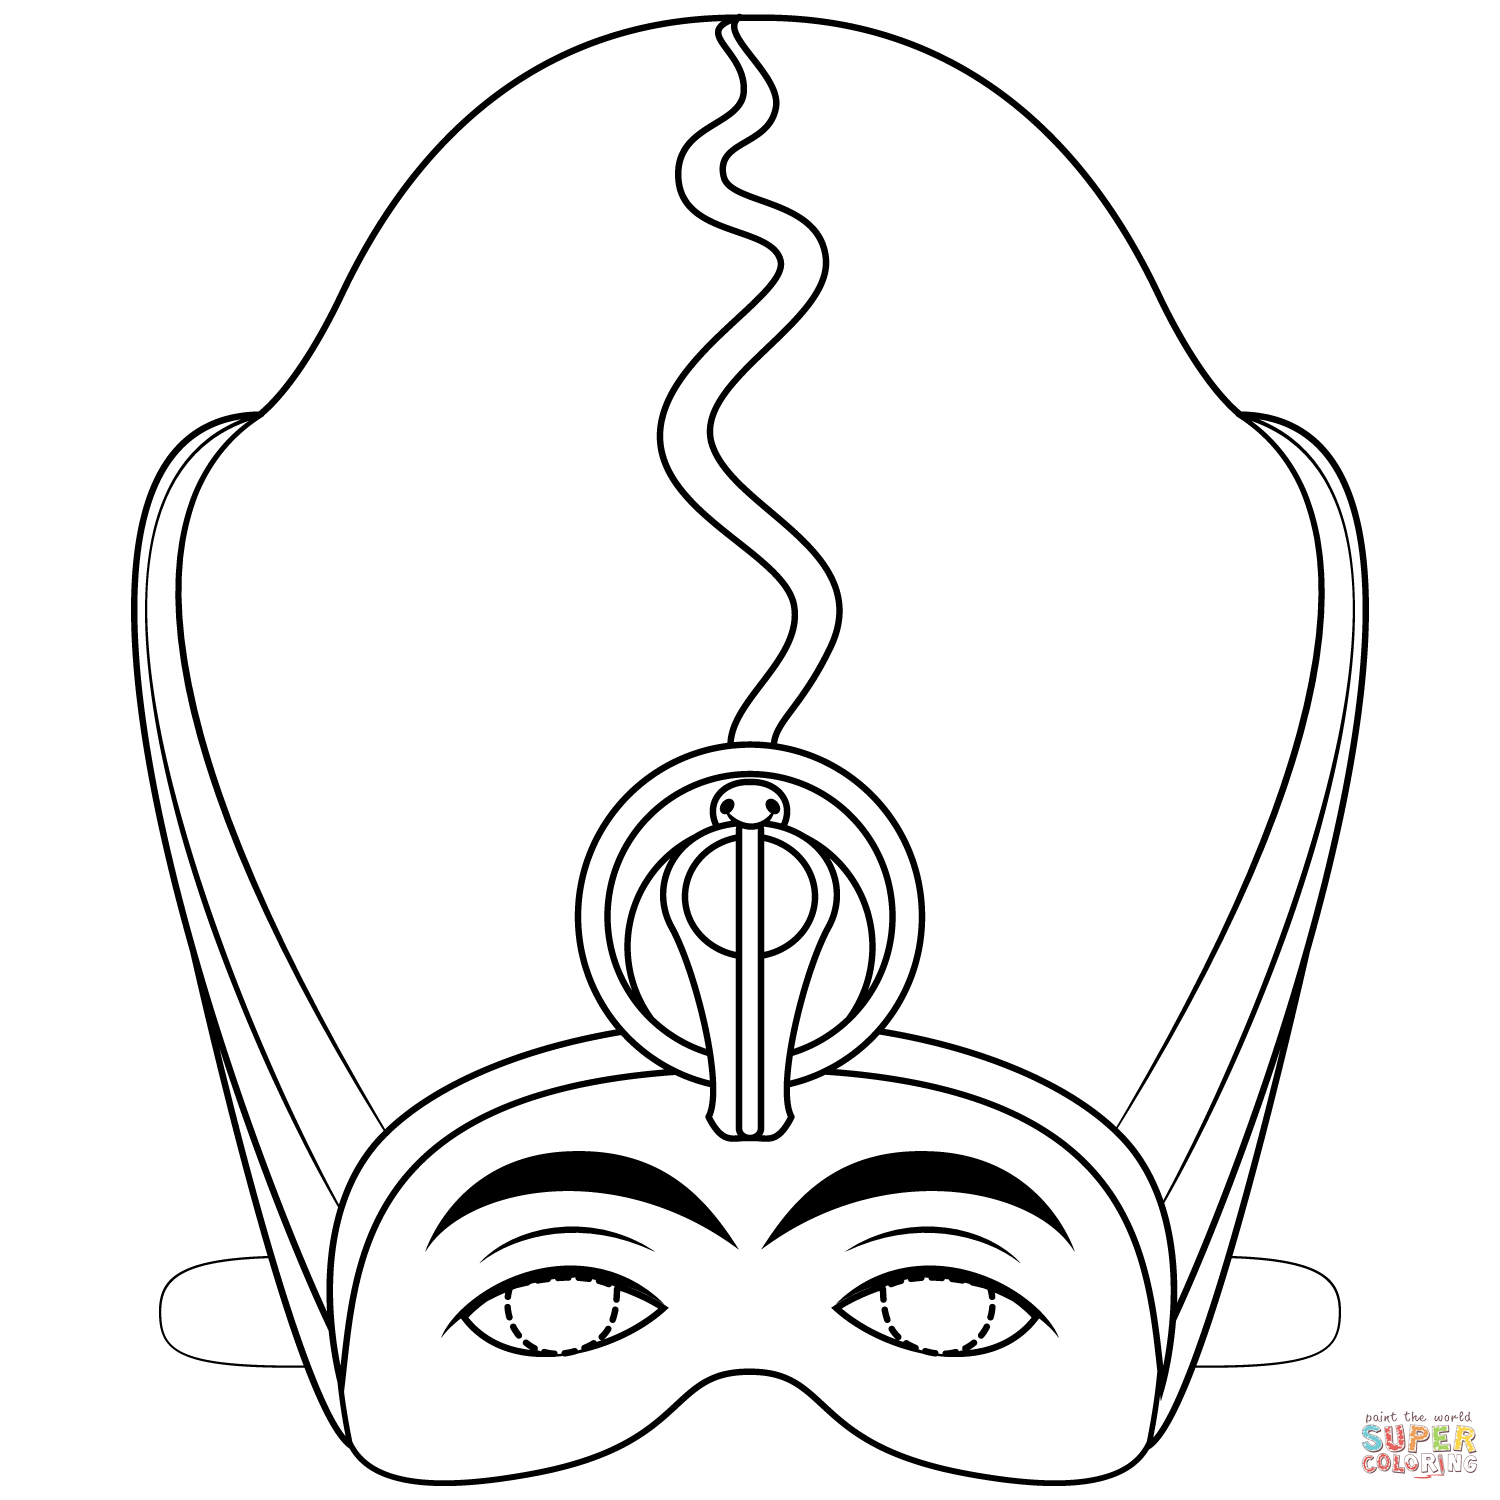 Egyptian Pharaoh Mask Coloring Page Free Printable Coloring Pages Egyptian Mask Ancient Egypt For Kids Coloring Pages